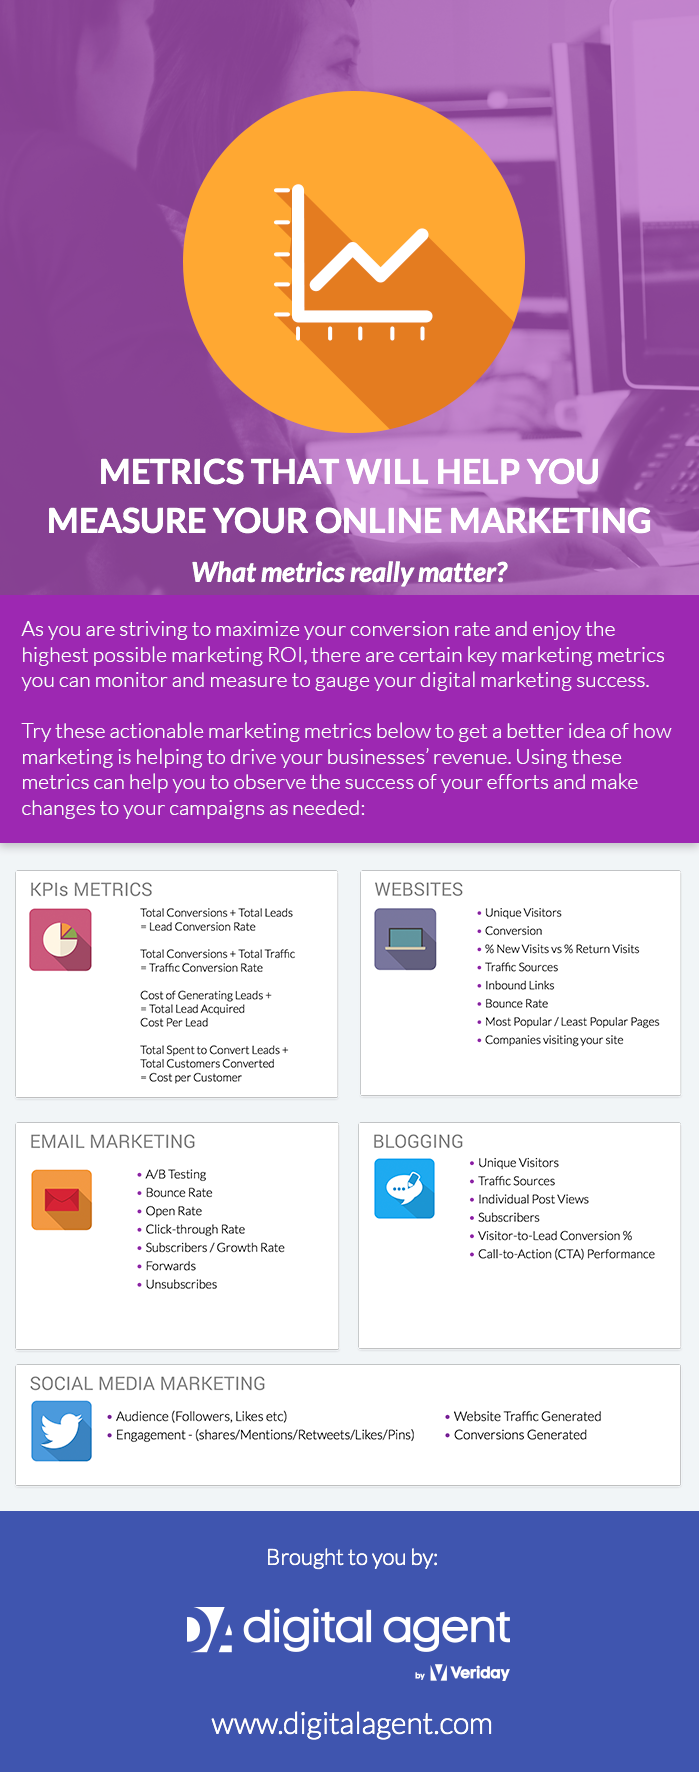 Metrics to Measure Advisor's Online Marketing Success: What metrics really matter?